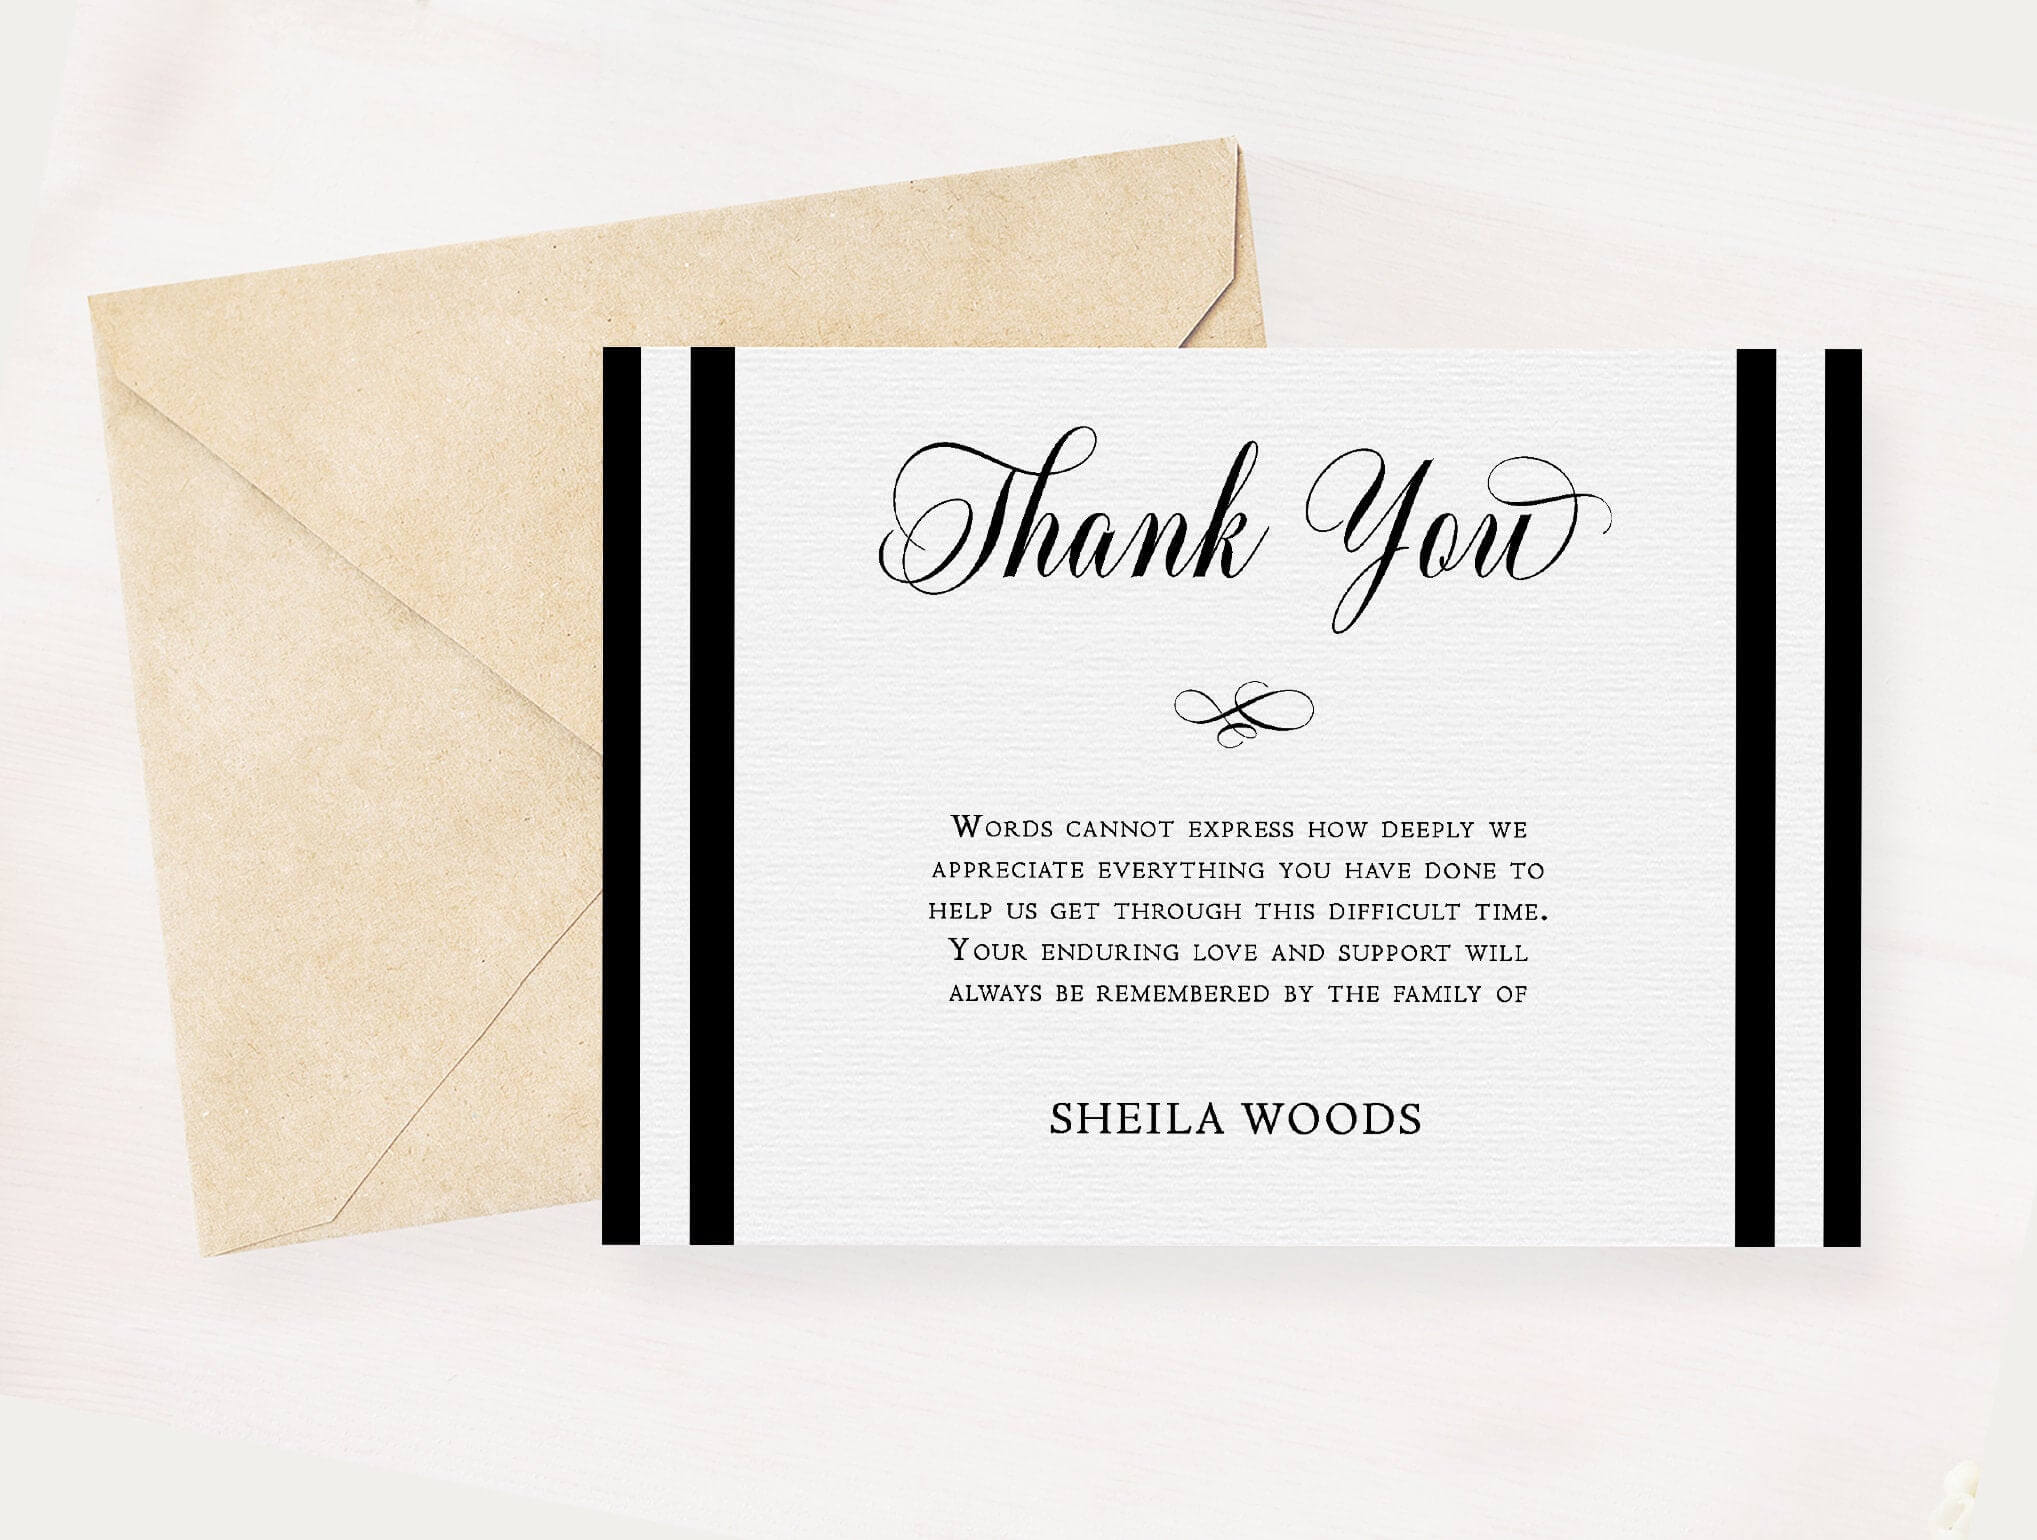 Black & White Sympathy Thank You Card Memorial Service Editable Template  Obituary Service Microsoft Word Template Acknowledgement Card within Sympathy Thank You Card Template